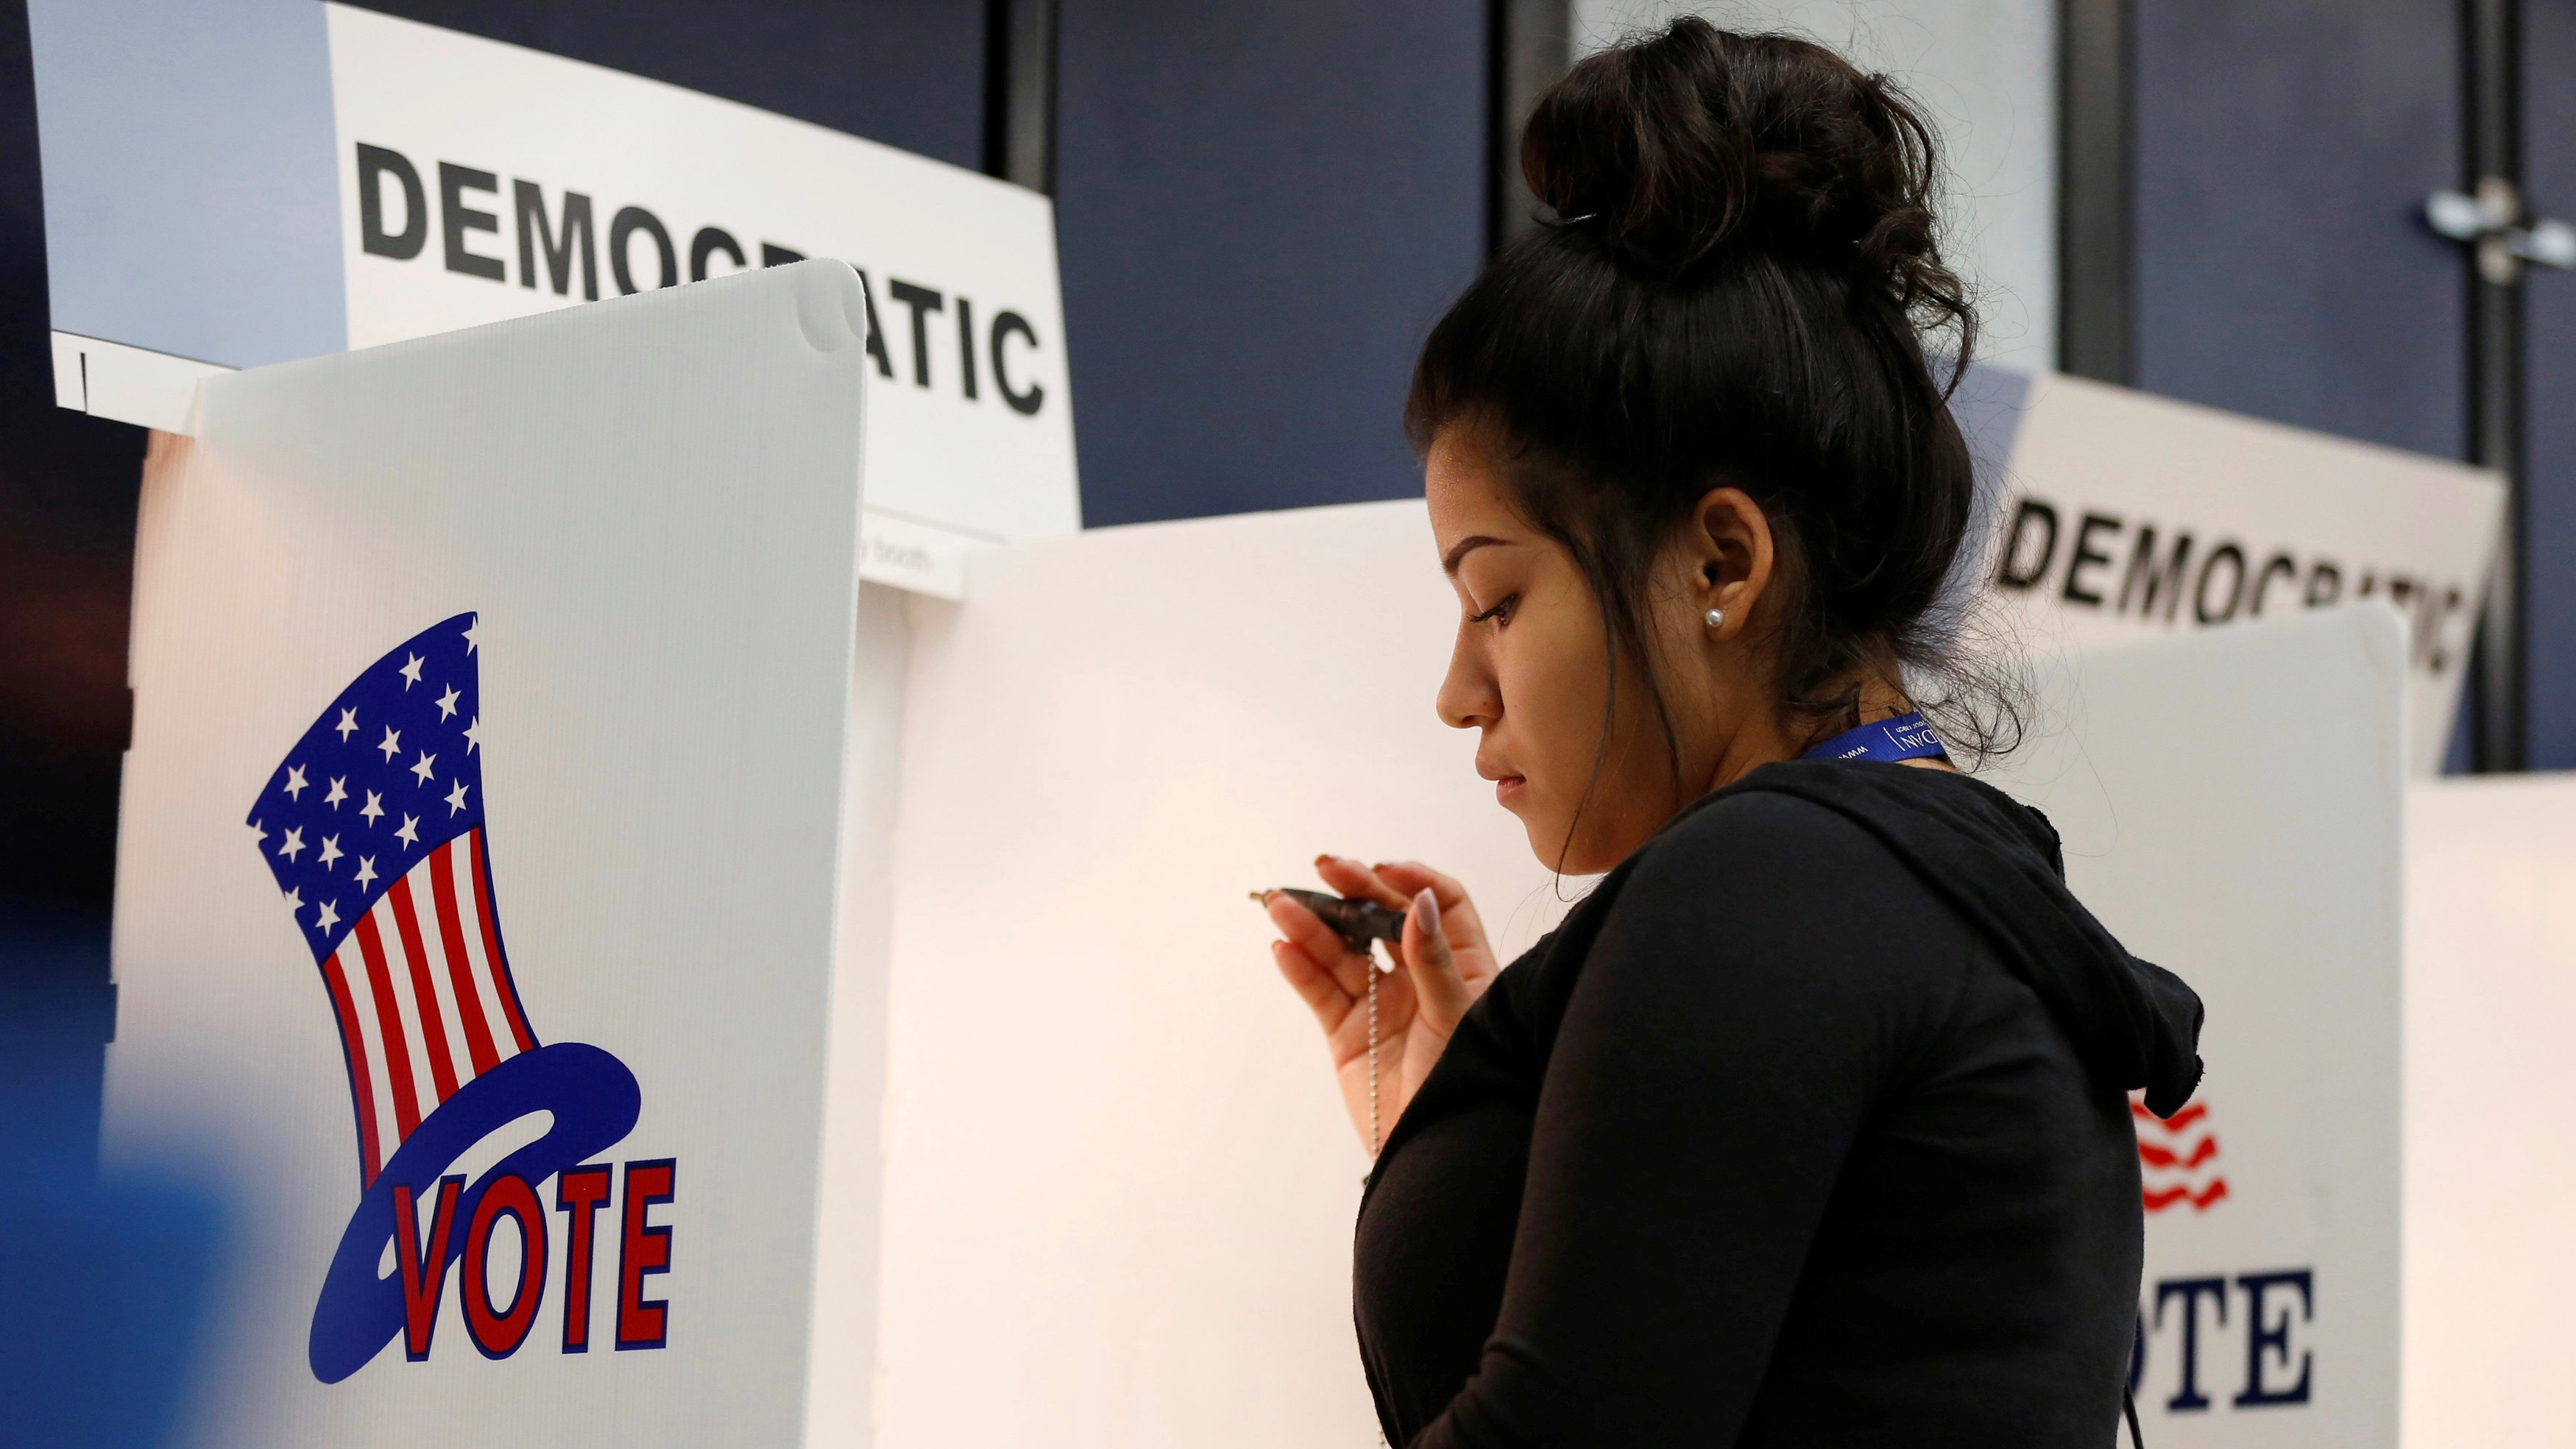 Kimberly Medina, 19, votes during the U.S. presidential primary election at Gates Street Elementary School in Los Angeles, California, on  June 7, 2016. Californians will vote Nov. 8 on a ballot measure that seeks to overturn a ban on bilingual education.